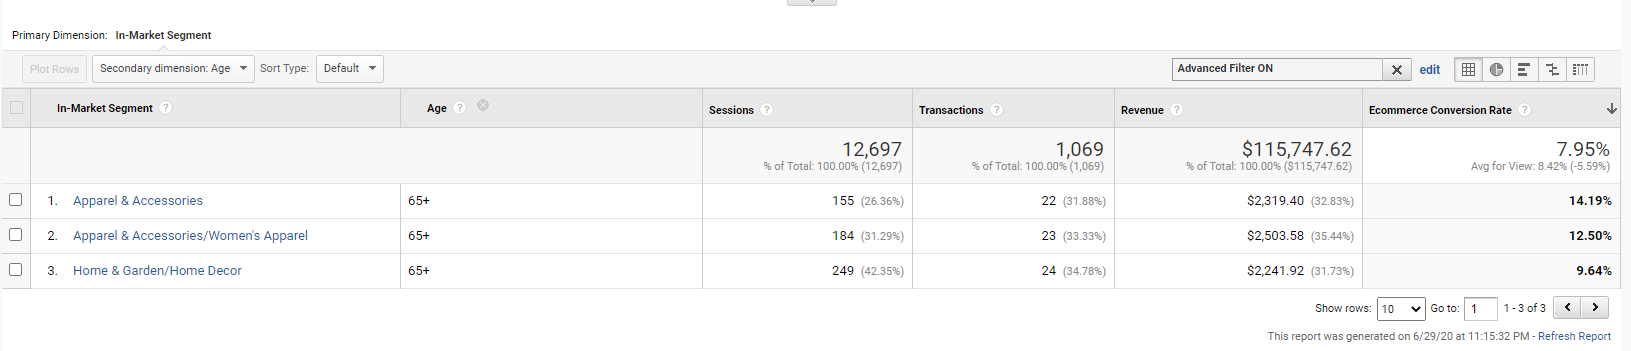 How to Weed Out Less Qualified Audiences from Your PPC Campaigns